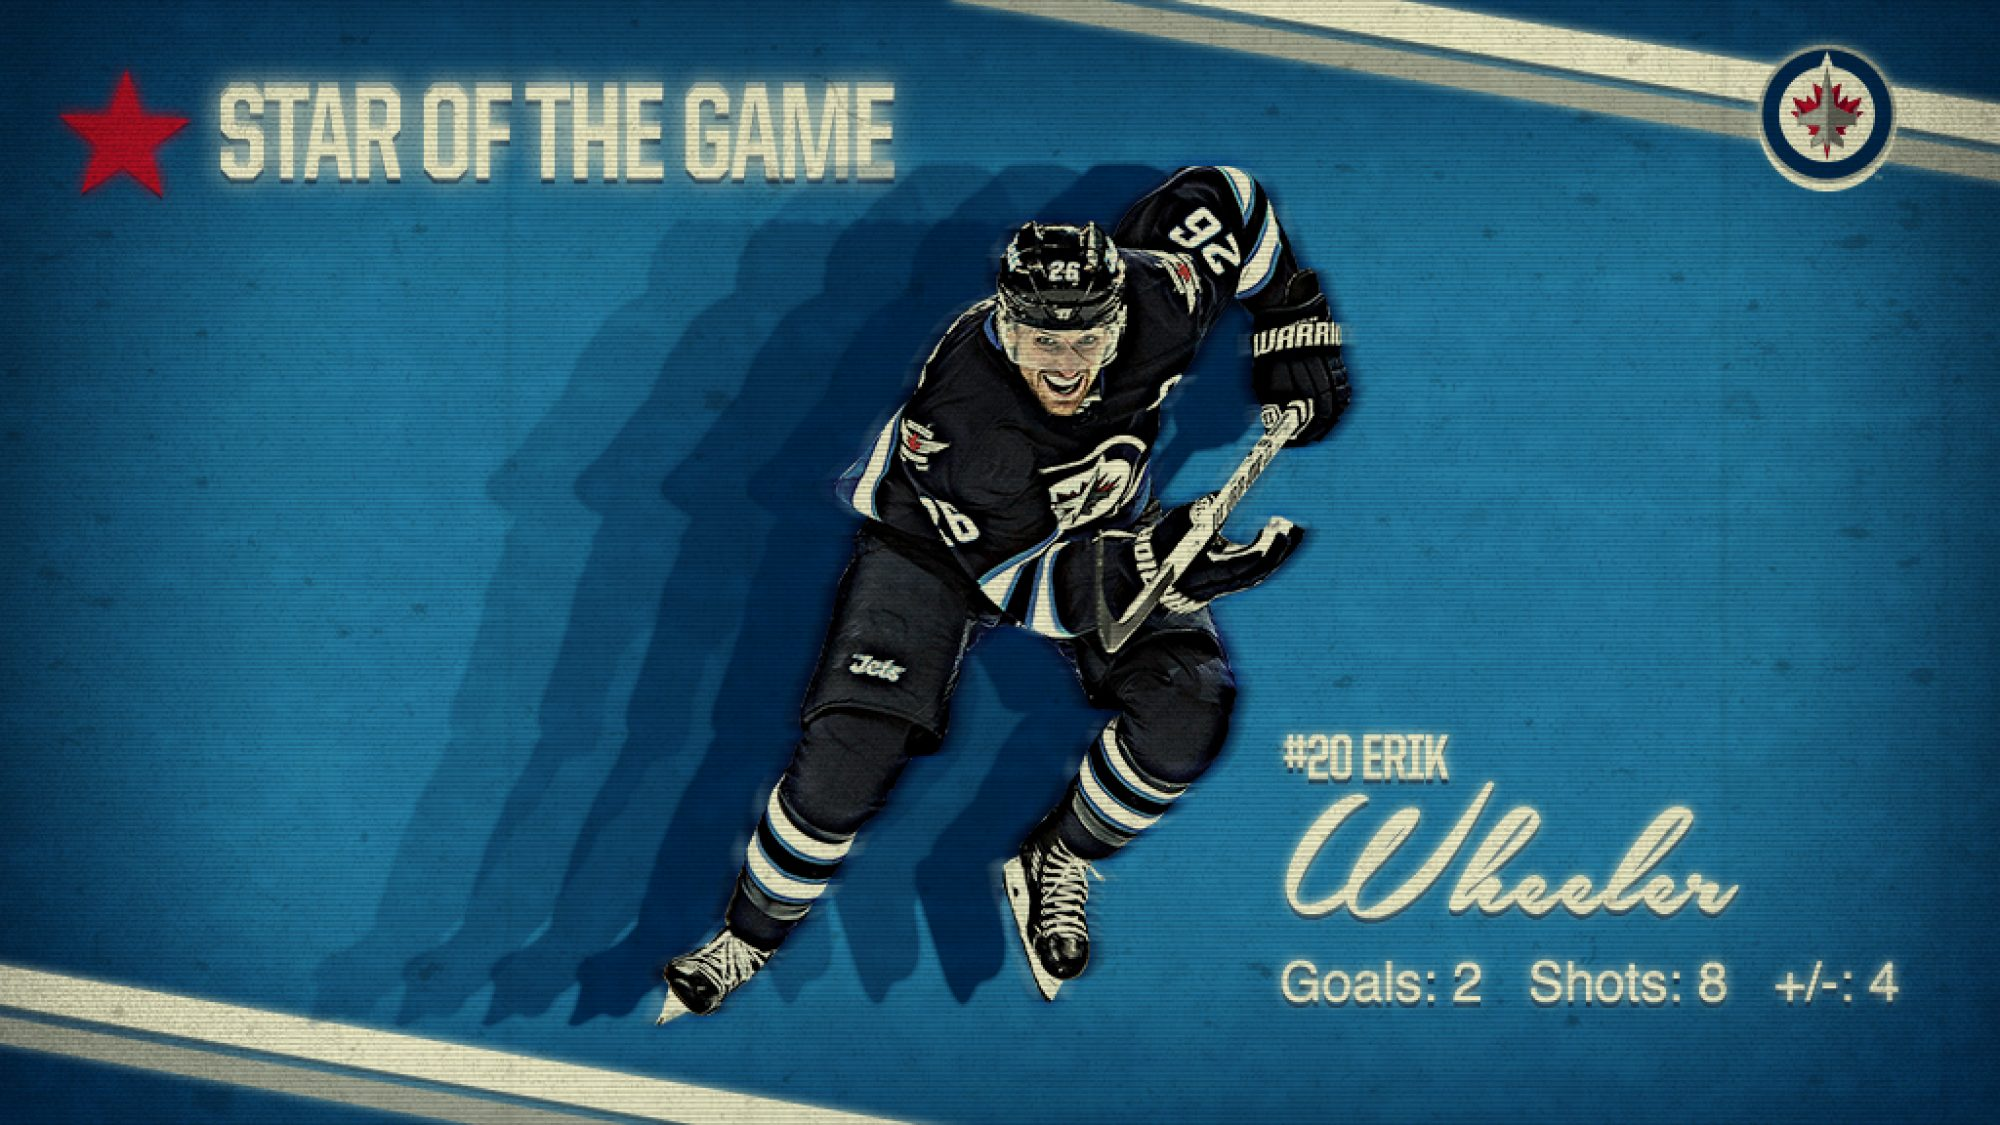 winnipeg_jets_star_of_the_game_01f